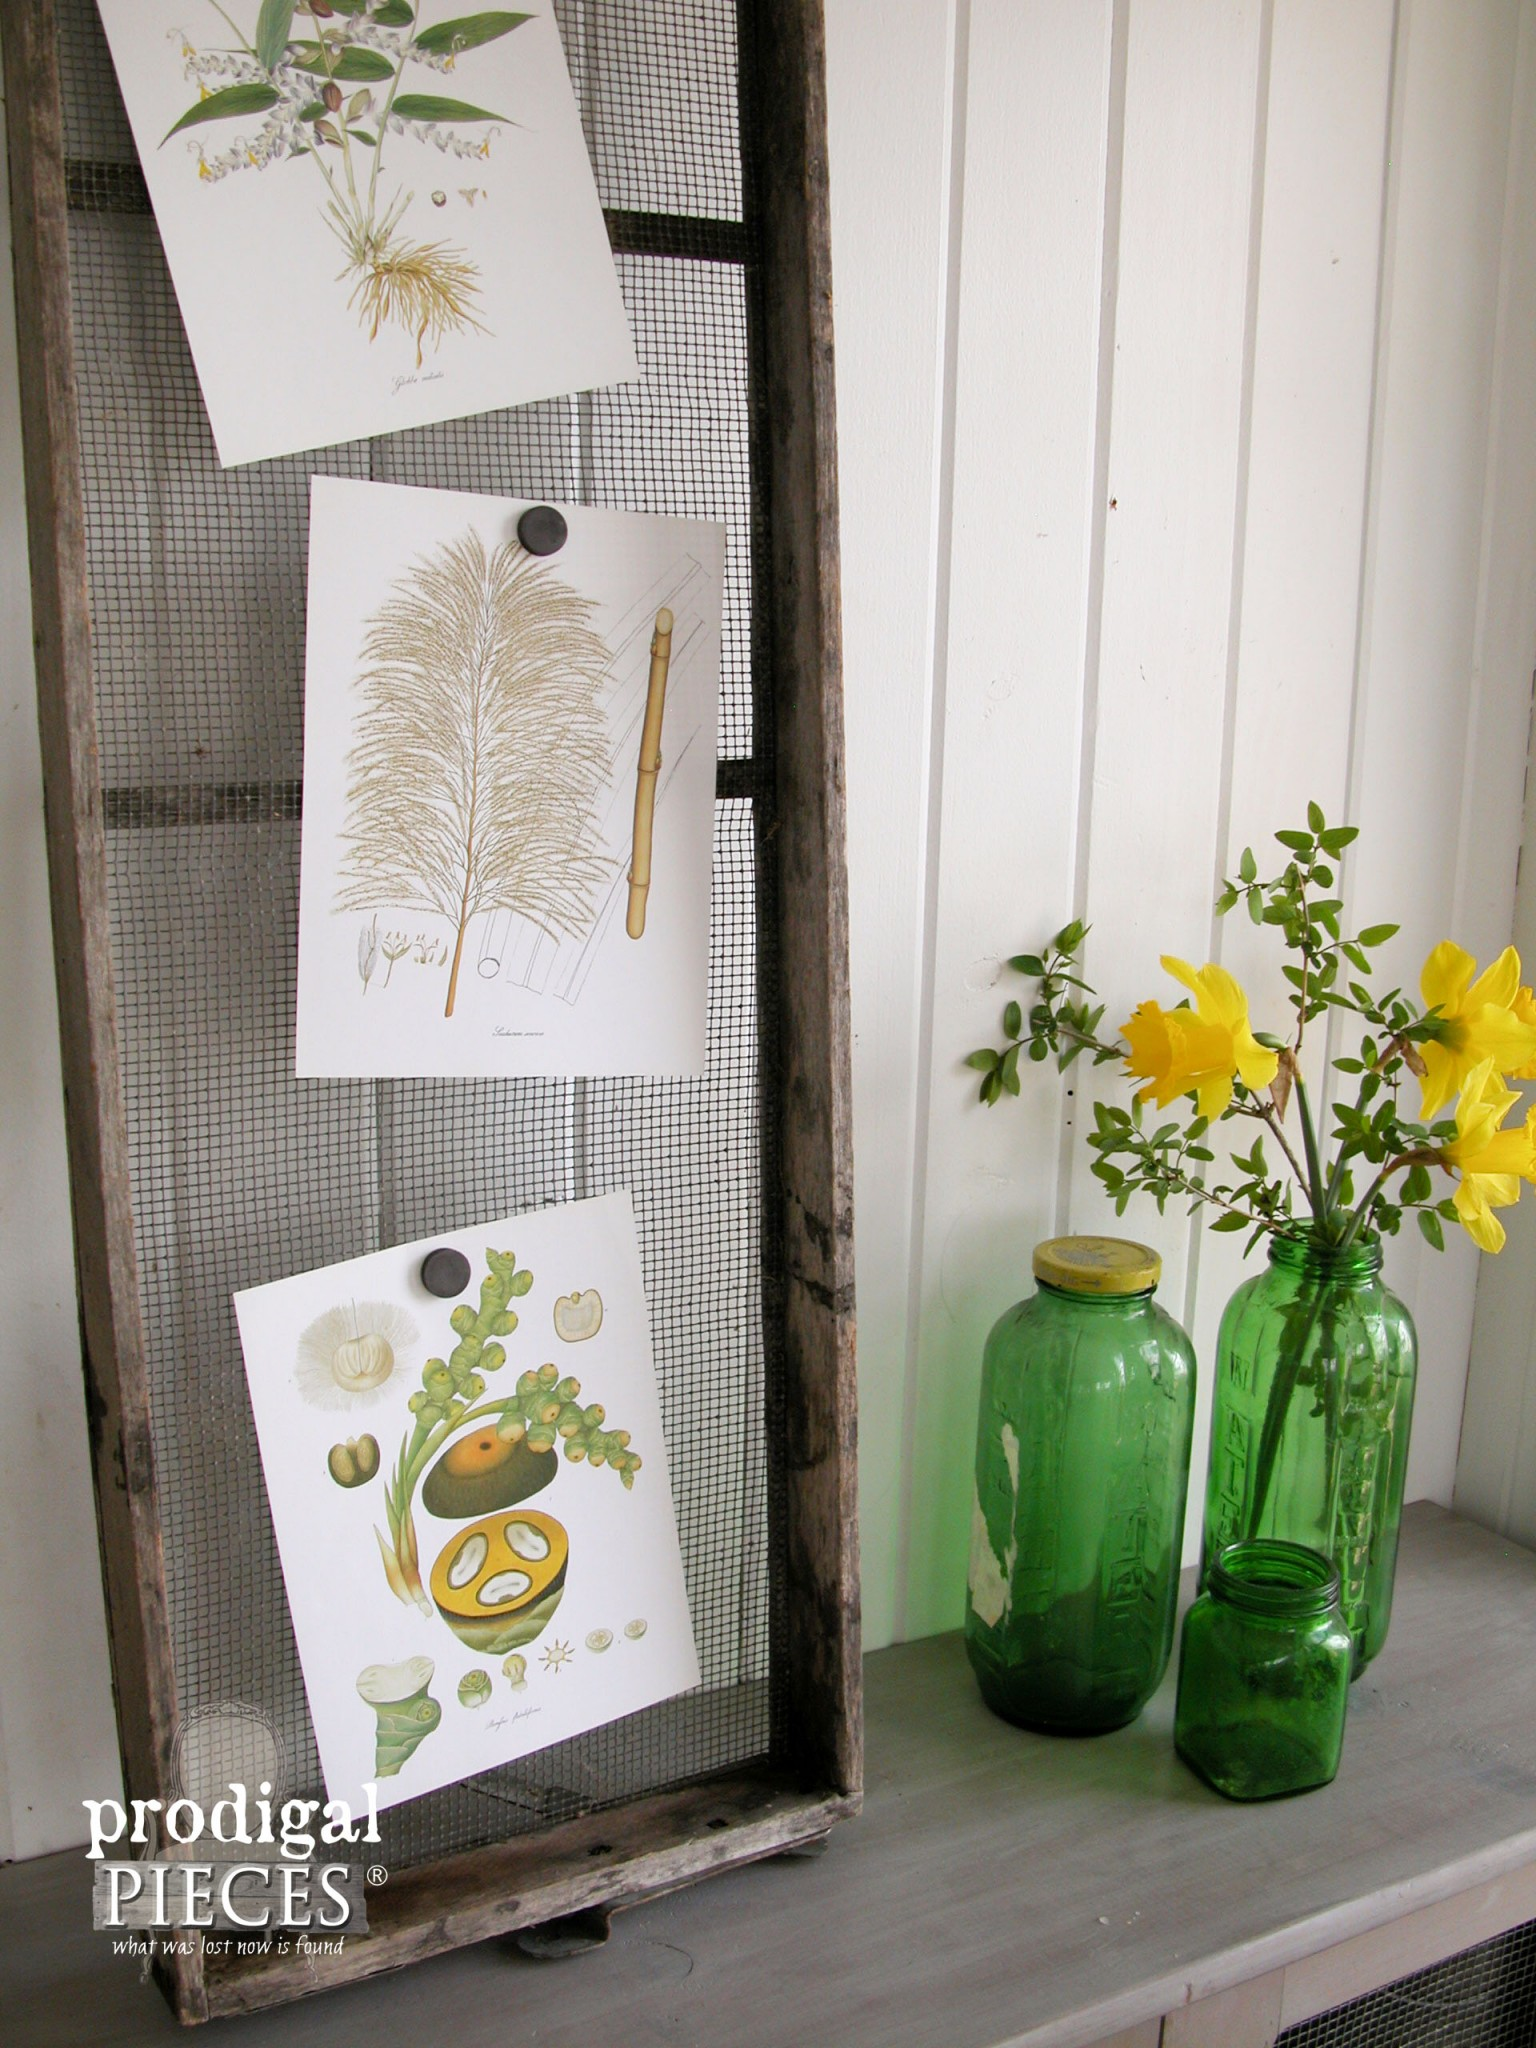 Repurposed Farmhouse Screen as Decor with Green Glass Bottles for Vases by Prodigal Pieces | www.prodigalpieces.com